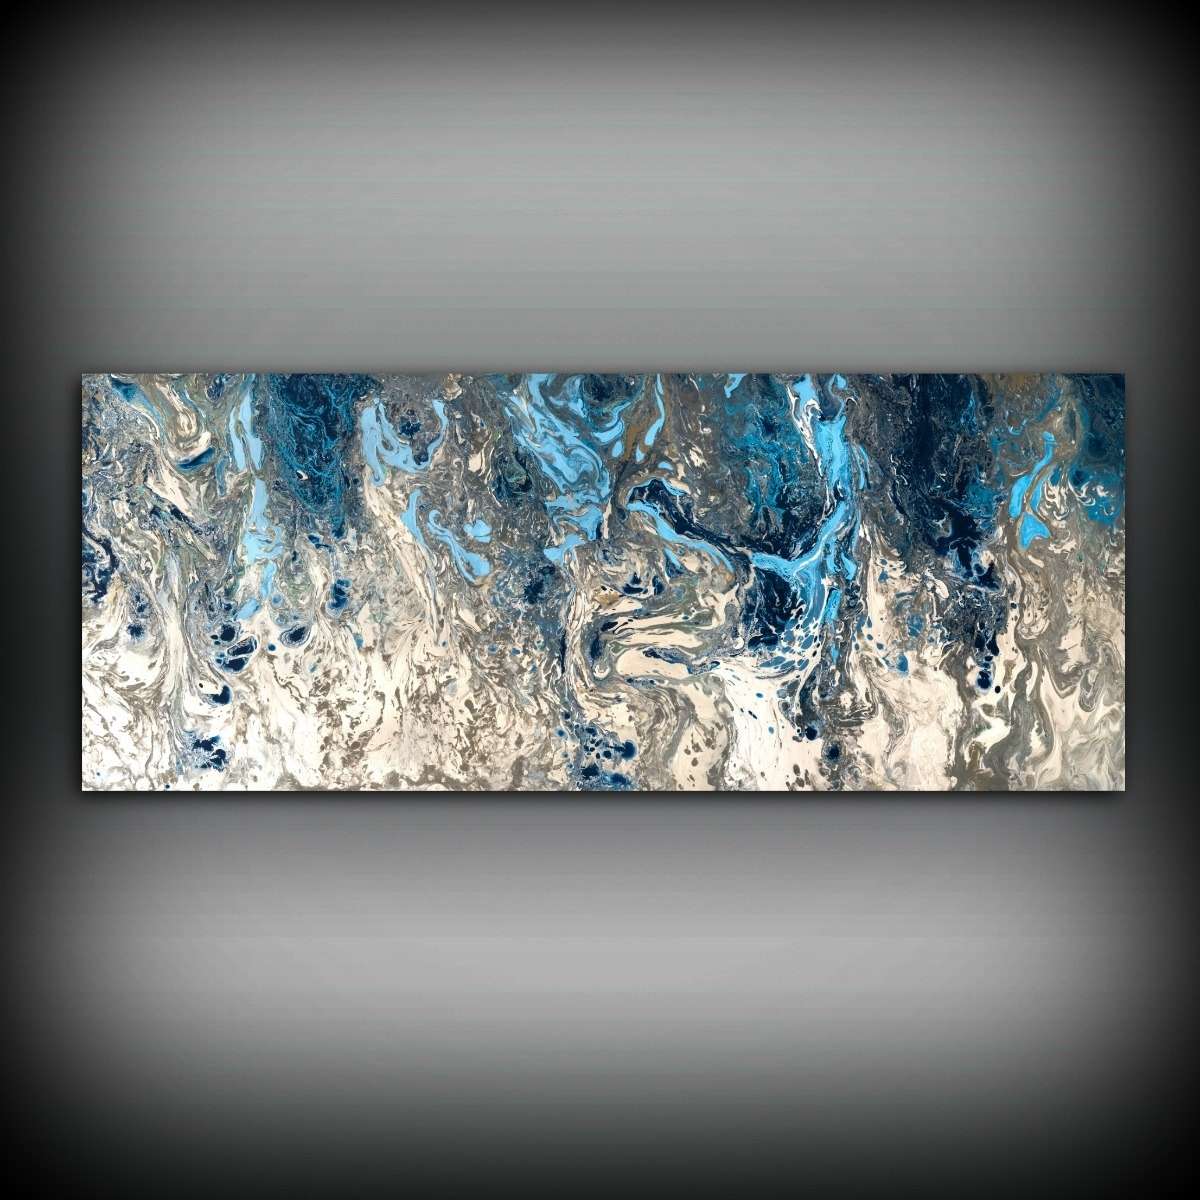 Original Painting, Navy Blue And Gray Painting Abstract Painting In Recent Original Abstract Wall Art (View 9 of 20)